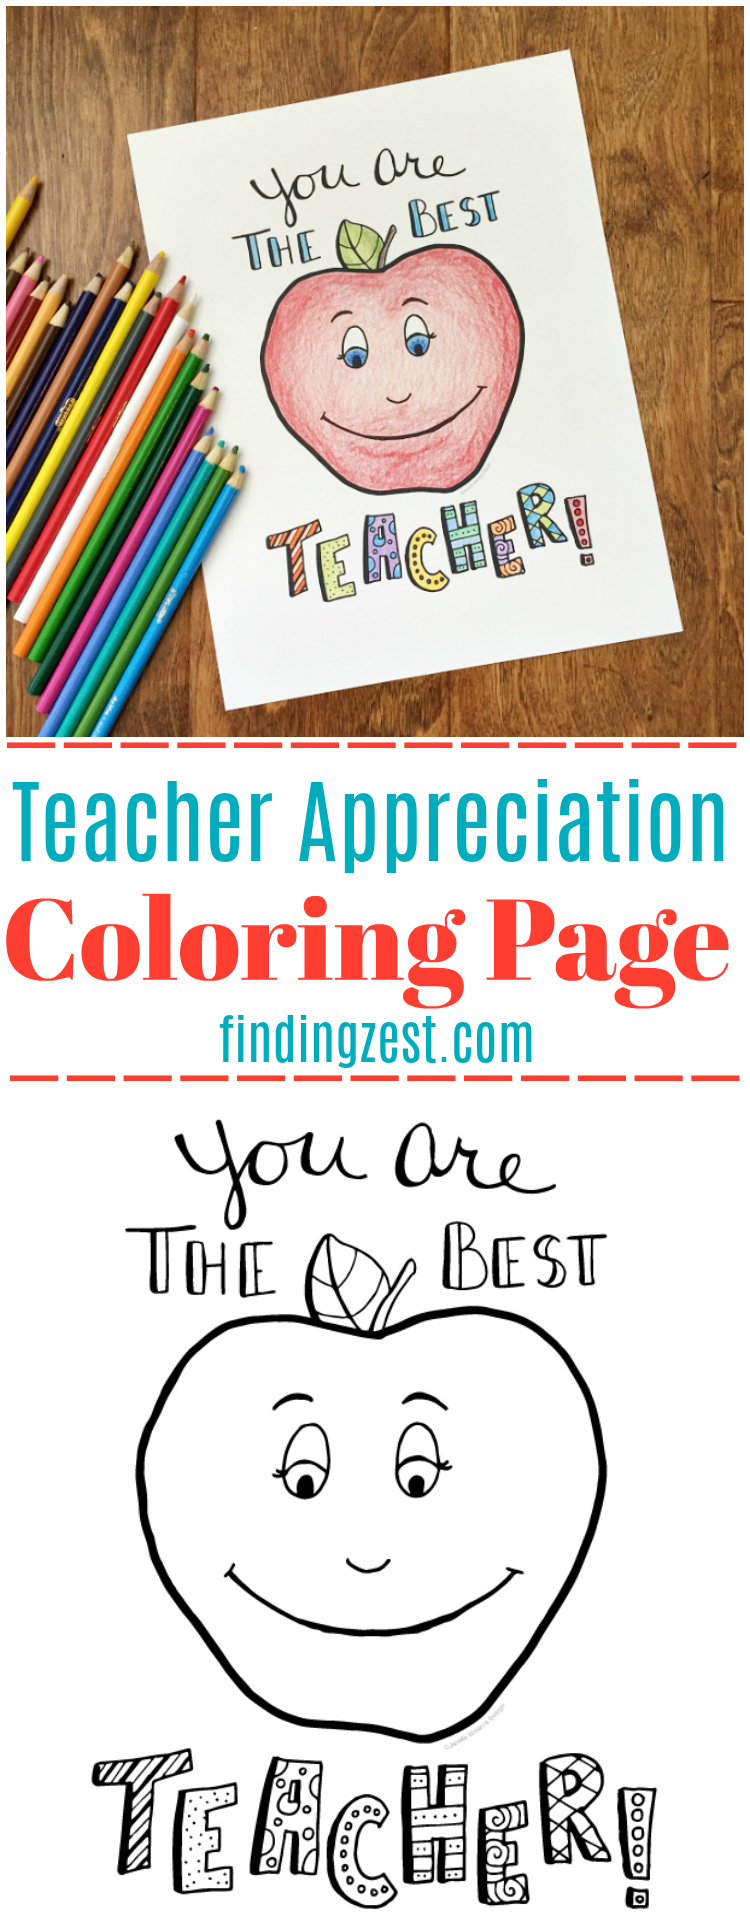 - Teacher Appreciation Coloring Page Free Printable - Finding Zest